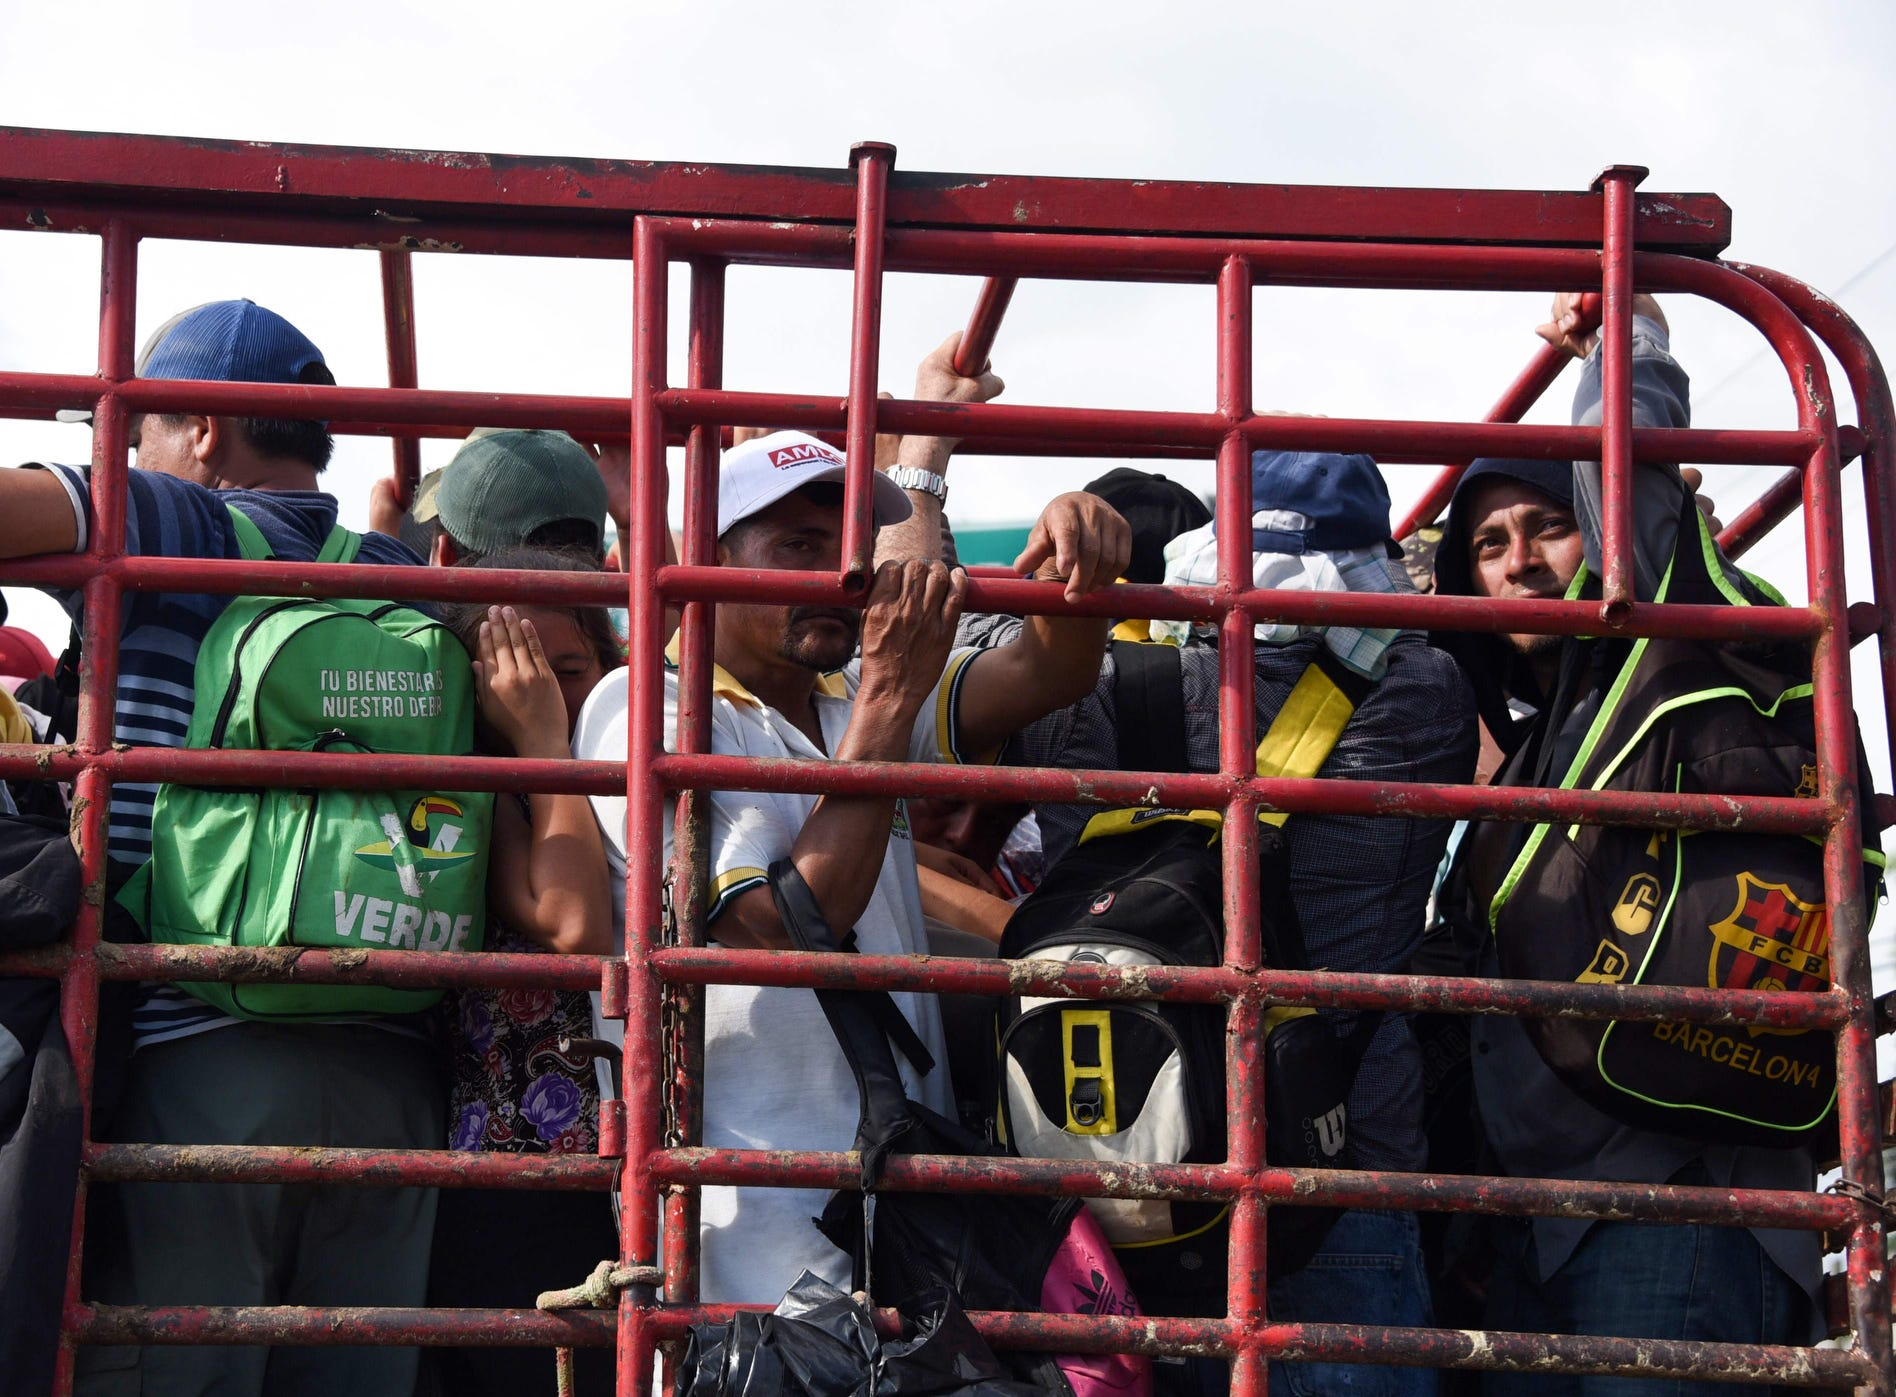 Migrants onboard a truck take part in a caravan heading to the US, near Huehuetan, on their way from Tapachula to Huixtla, Chiapas state, Mexico.